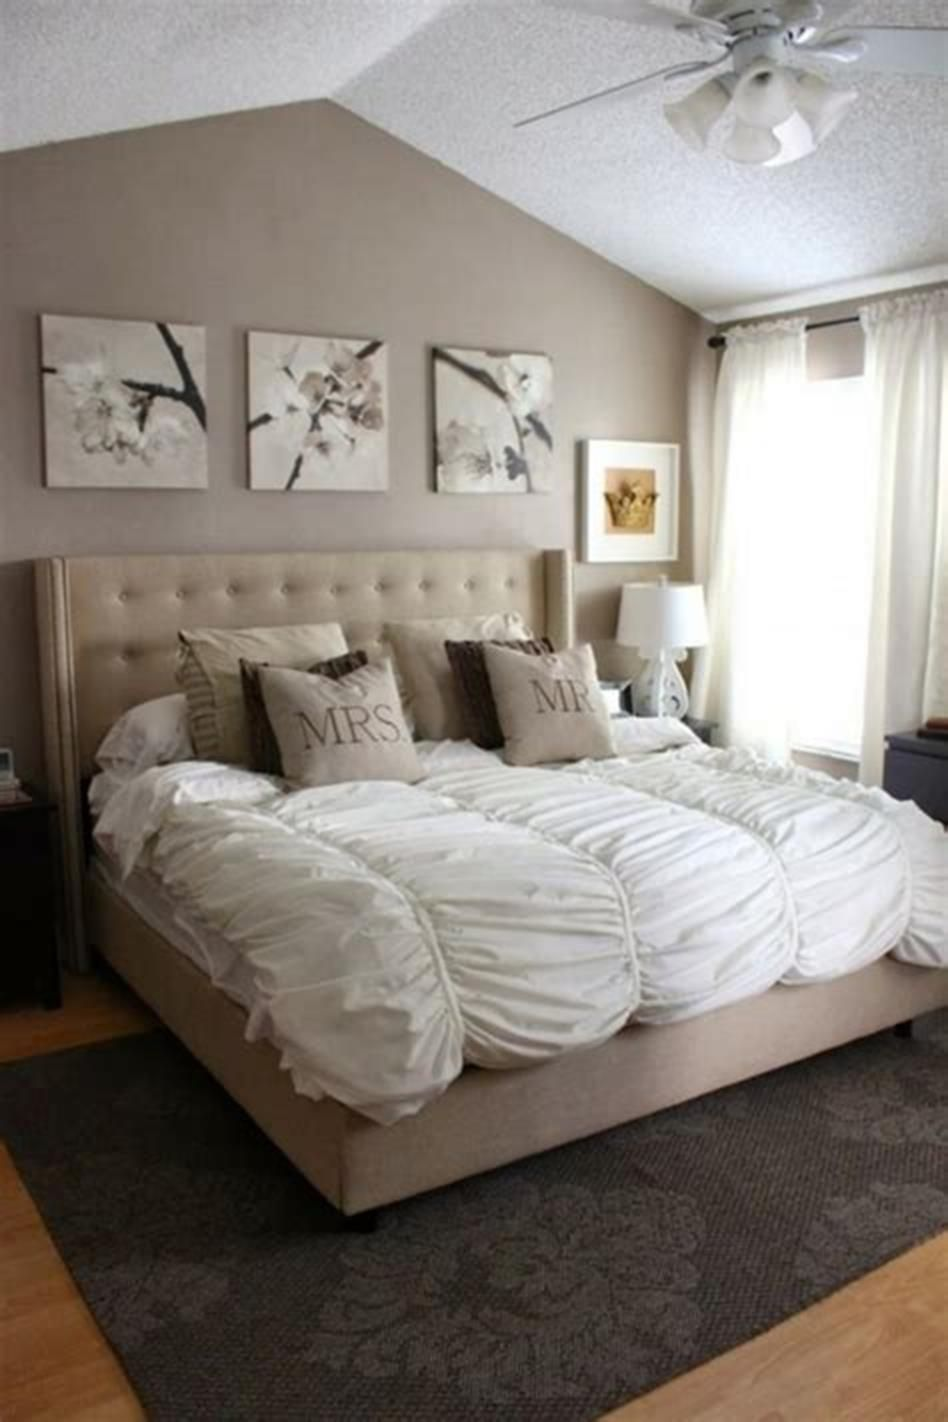 30 Romantic Cozy Master Bedroom Decorating Ideas 2019 26 Master Bedrooms Decor Bedroom Makeover Home